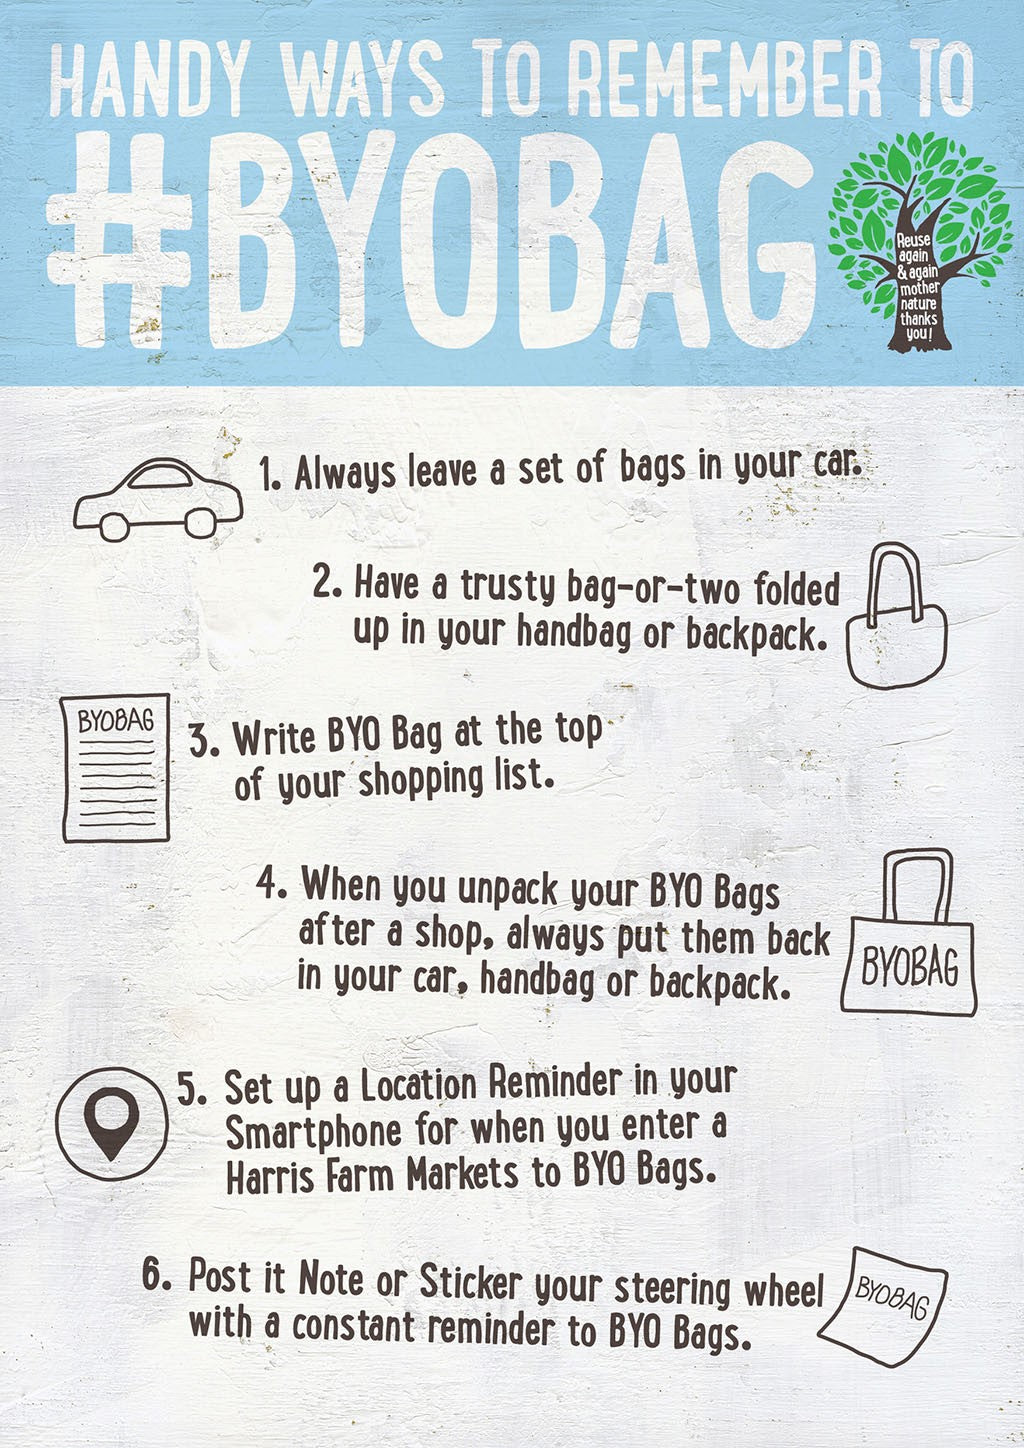 handy ways to remember to byo bags